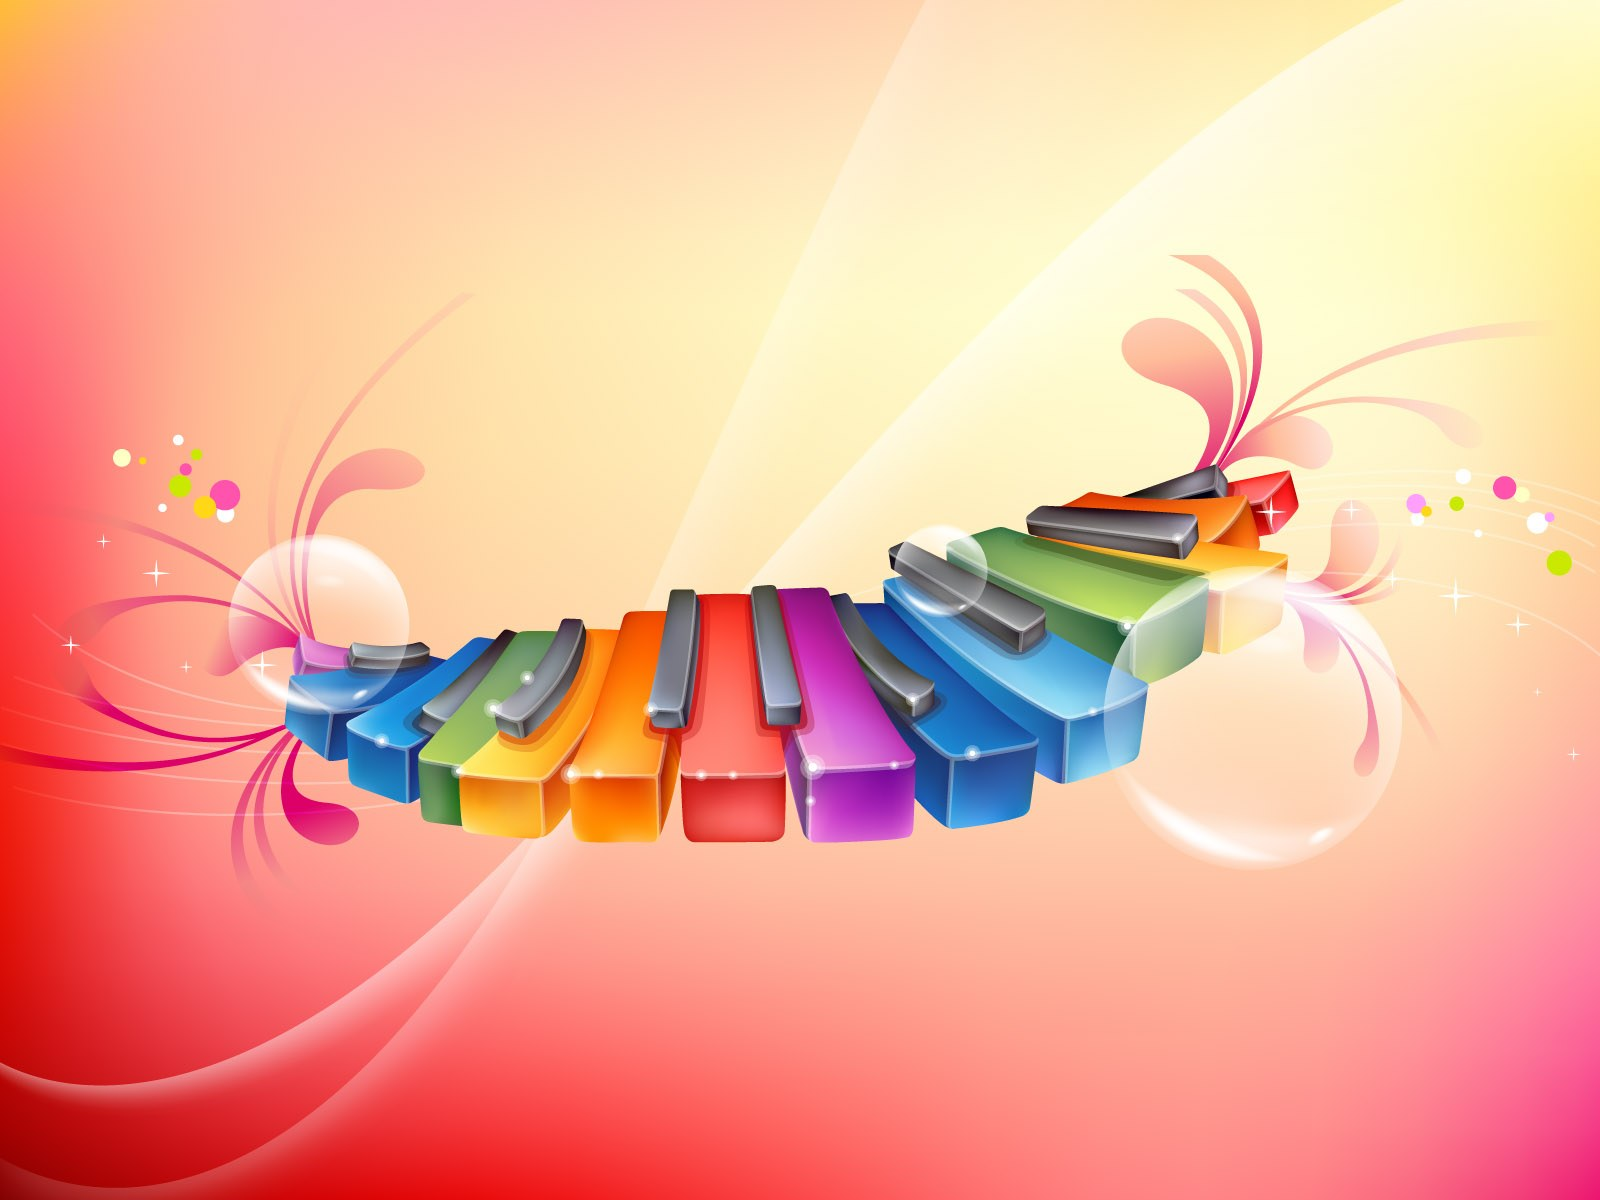 Happy cheerful songs Wallpapers - Download Free Digital Art and 3D Wallpapers...